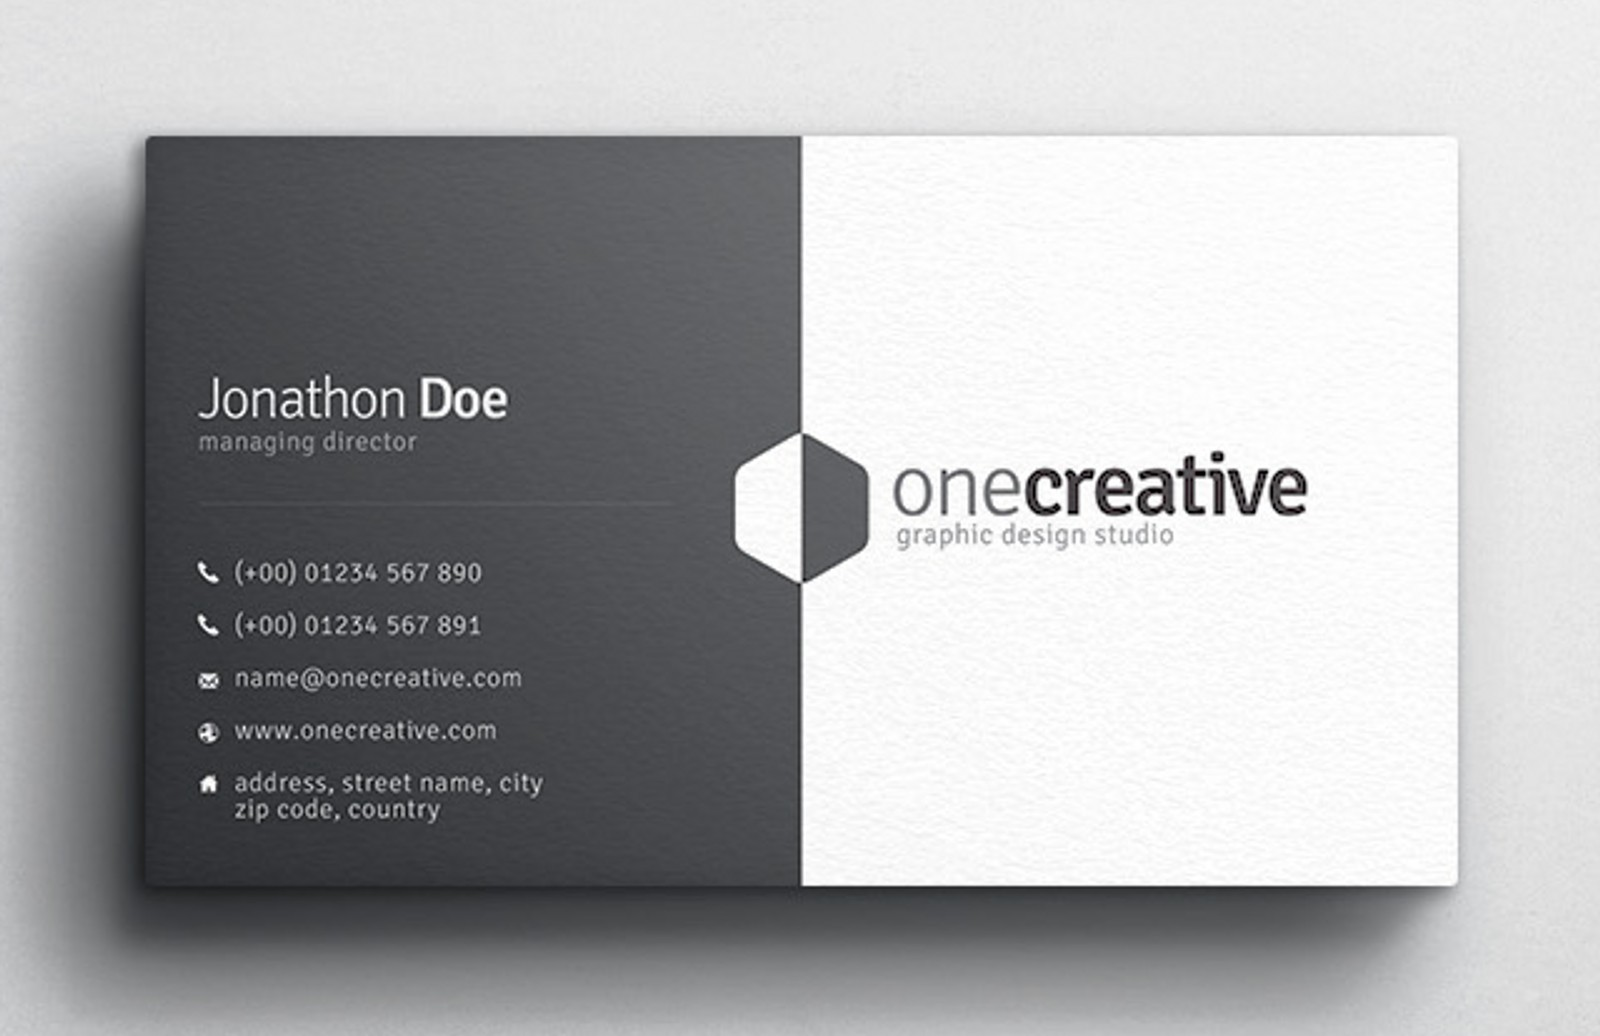 Duo business card design medialoot duo business card design wajeb Gallery